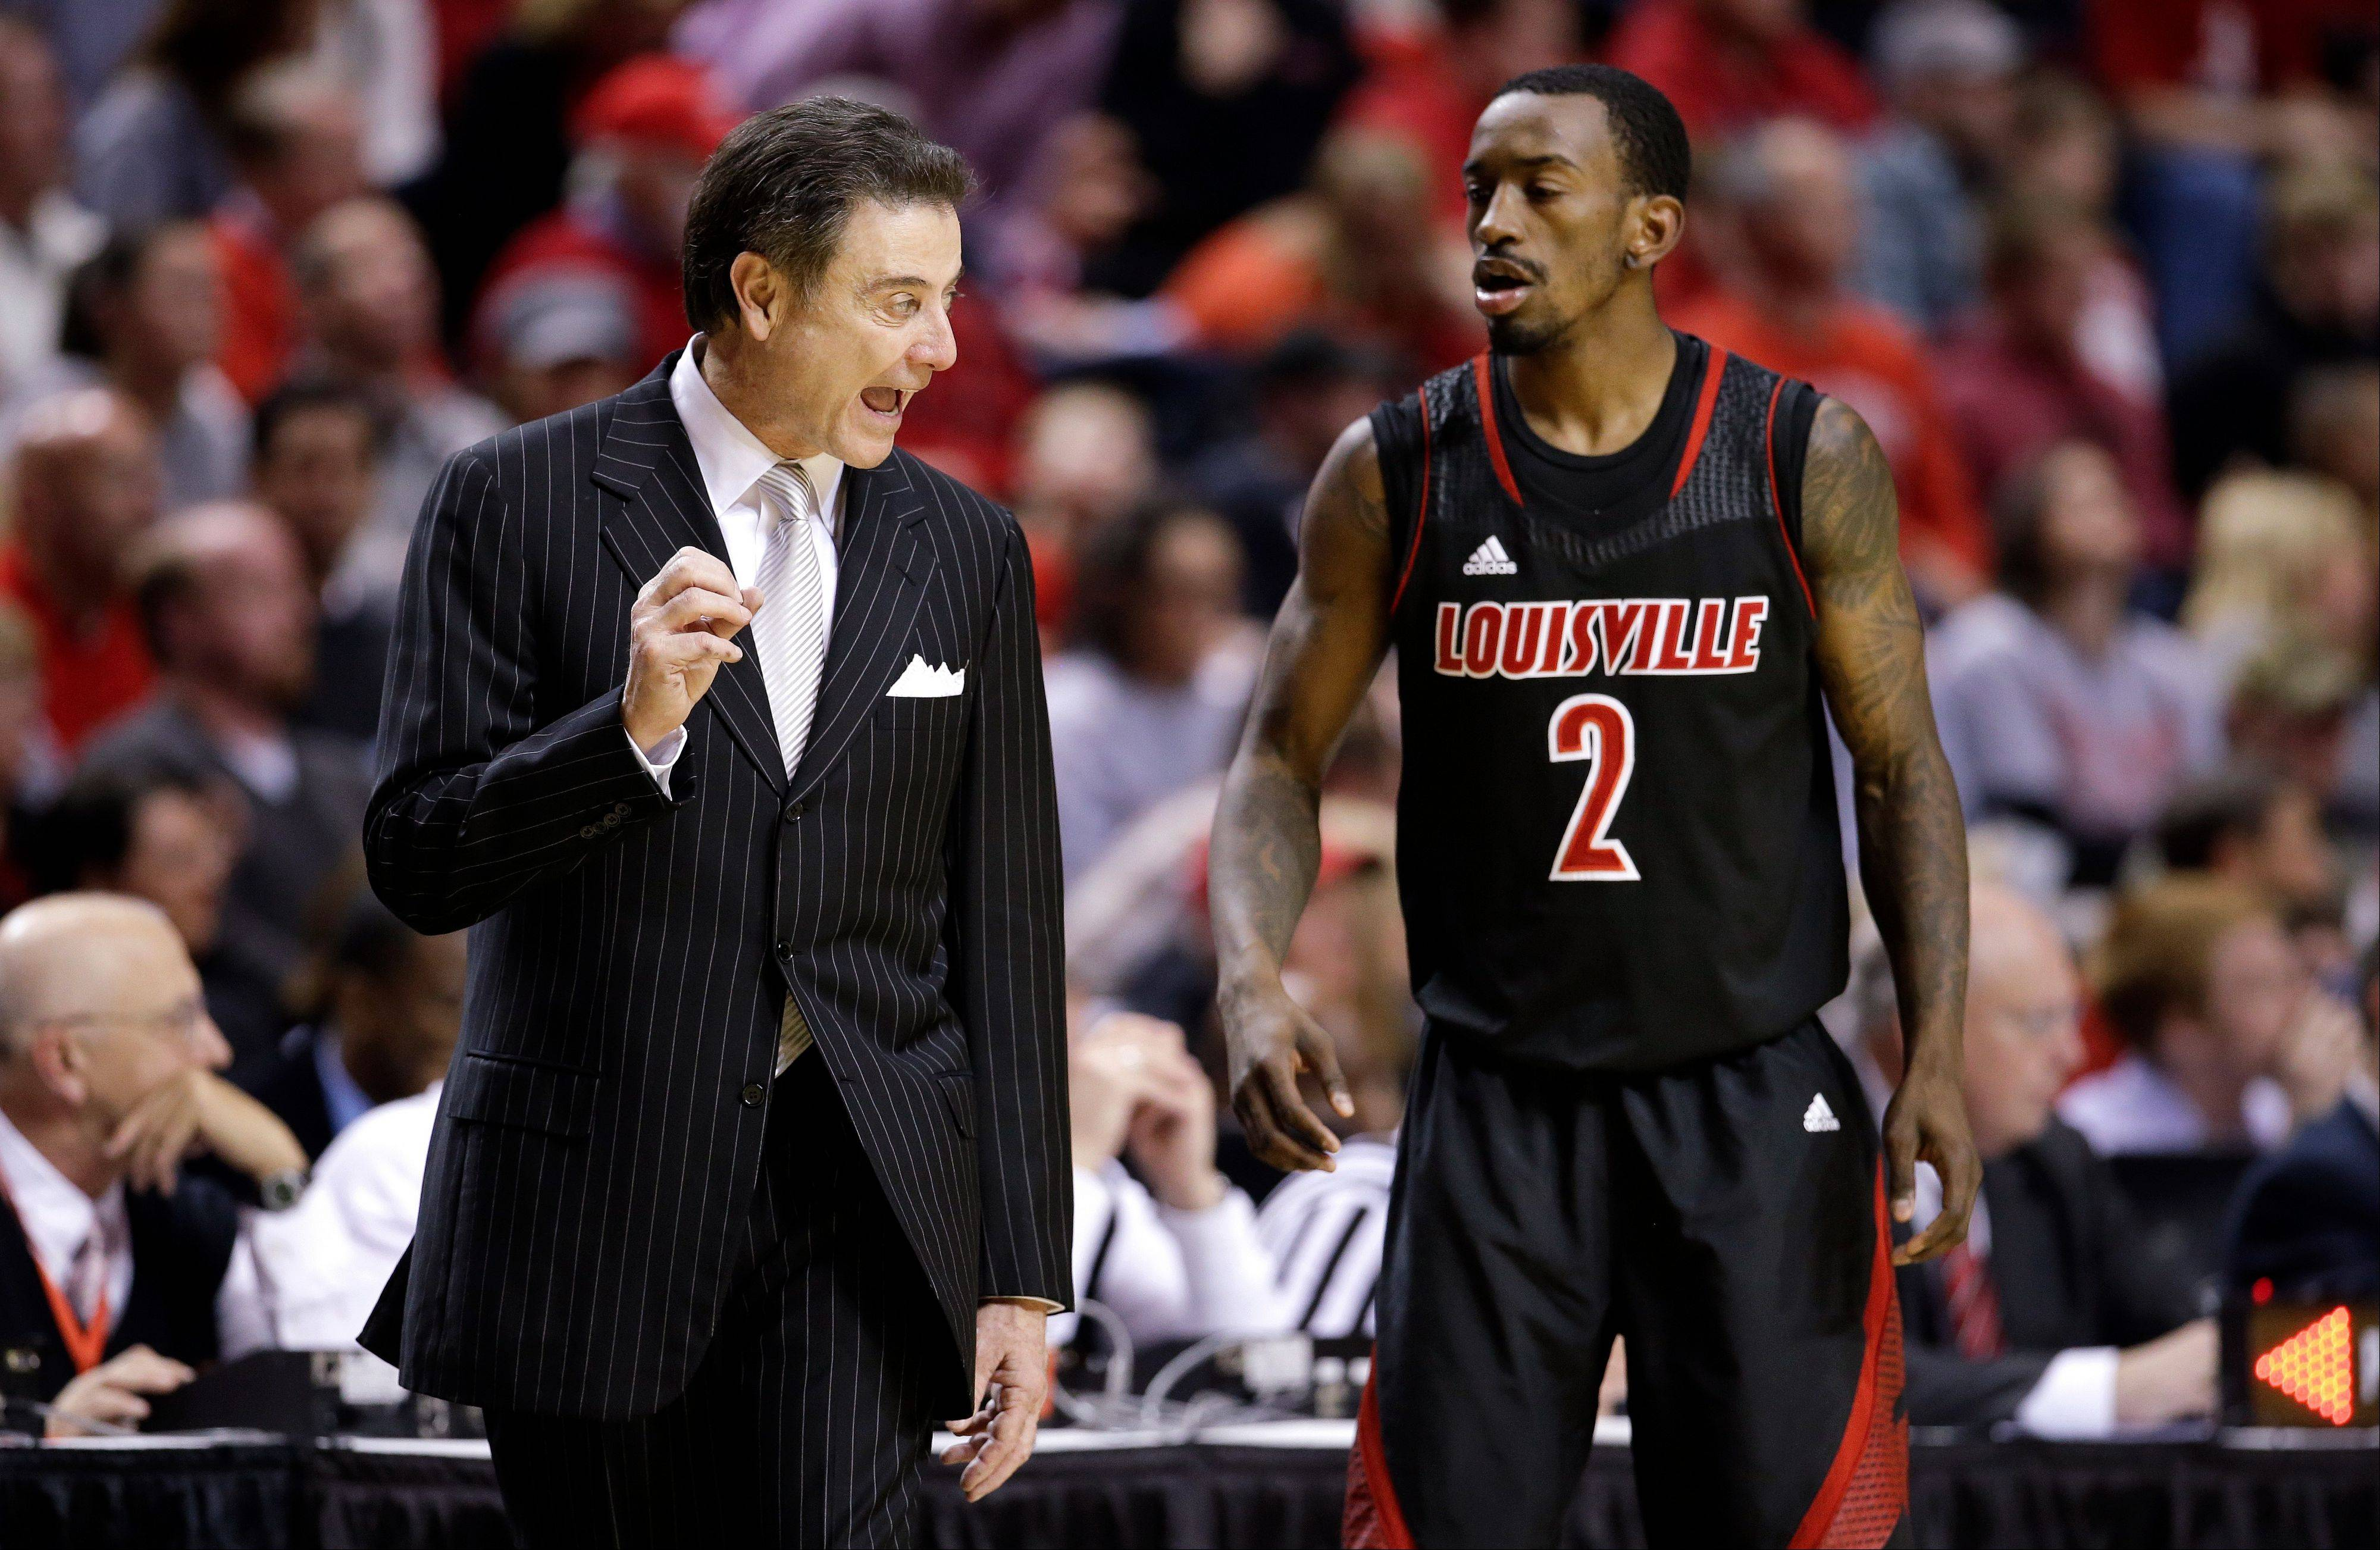 Louisville head coach Rick Pitino and the Cardinals enter the NCAA tournament as the overall No 1 seed.